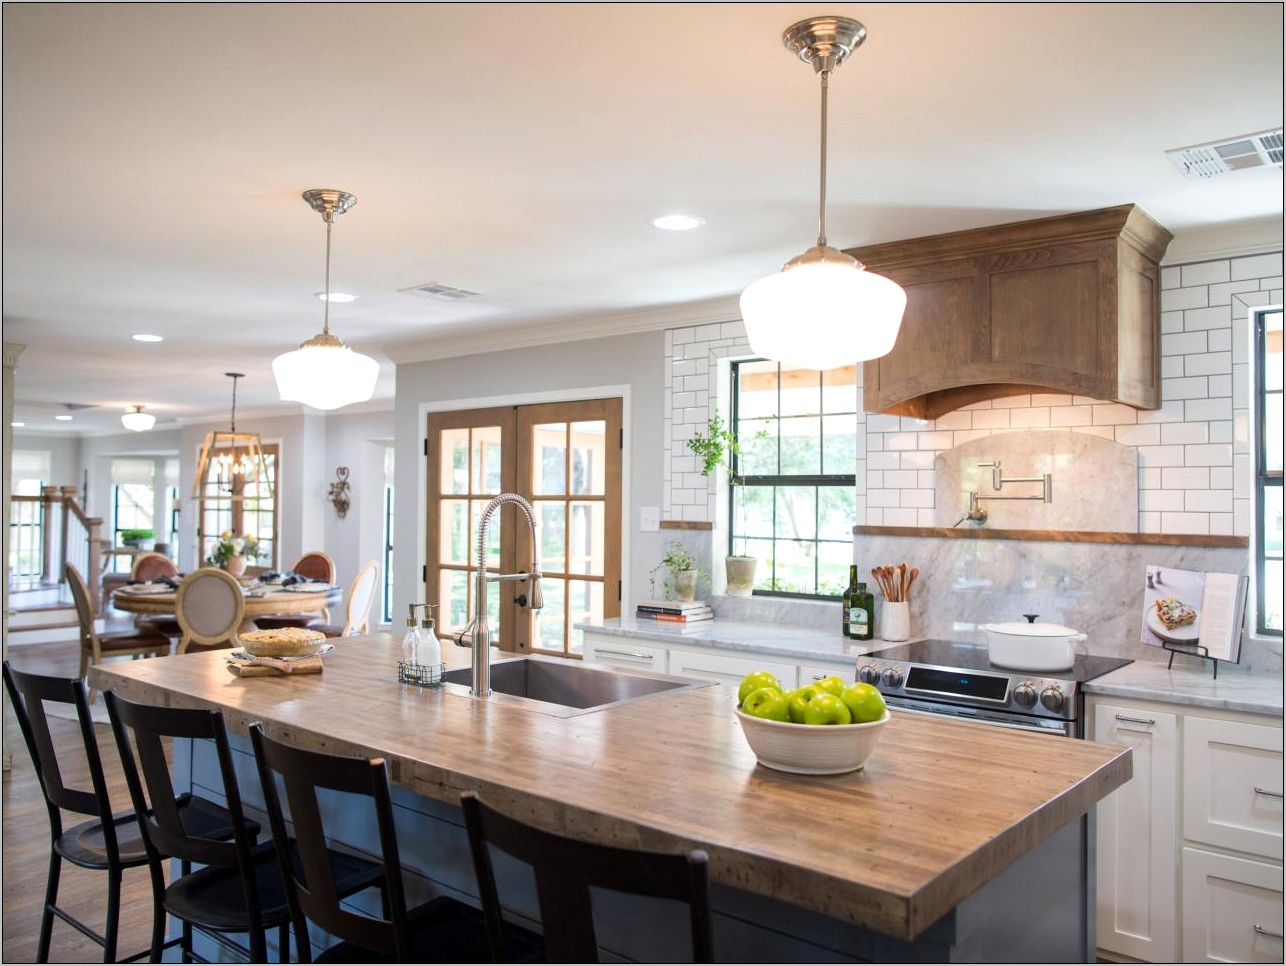 Modern Farmhouse Kitchens With Spanish Inspired Decor